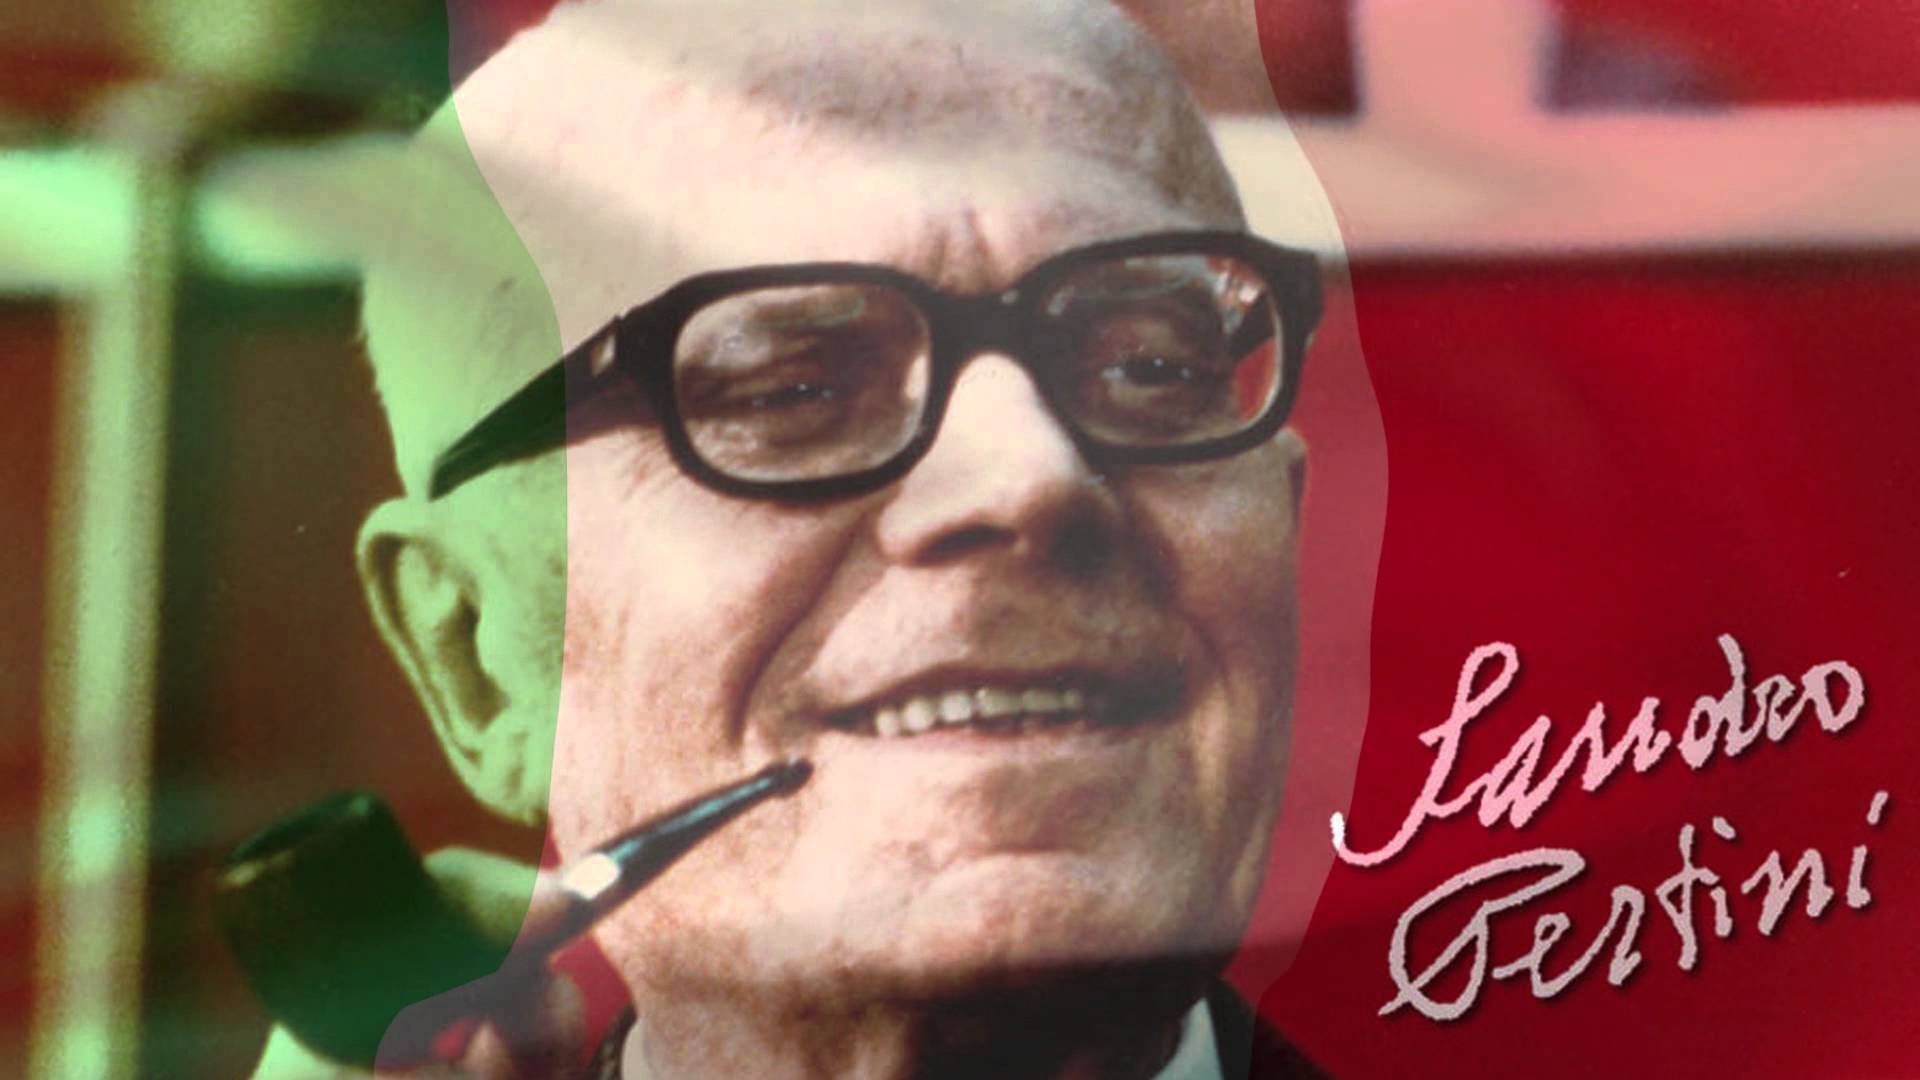 Aldo Penna alla Camera ricorda l'elezione di Sandro Pertini al Quirinale (VIDEO)